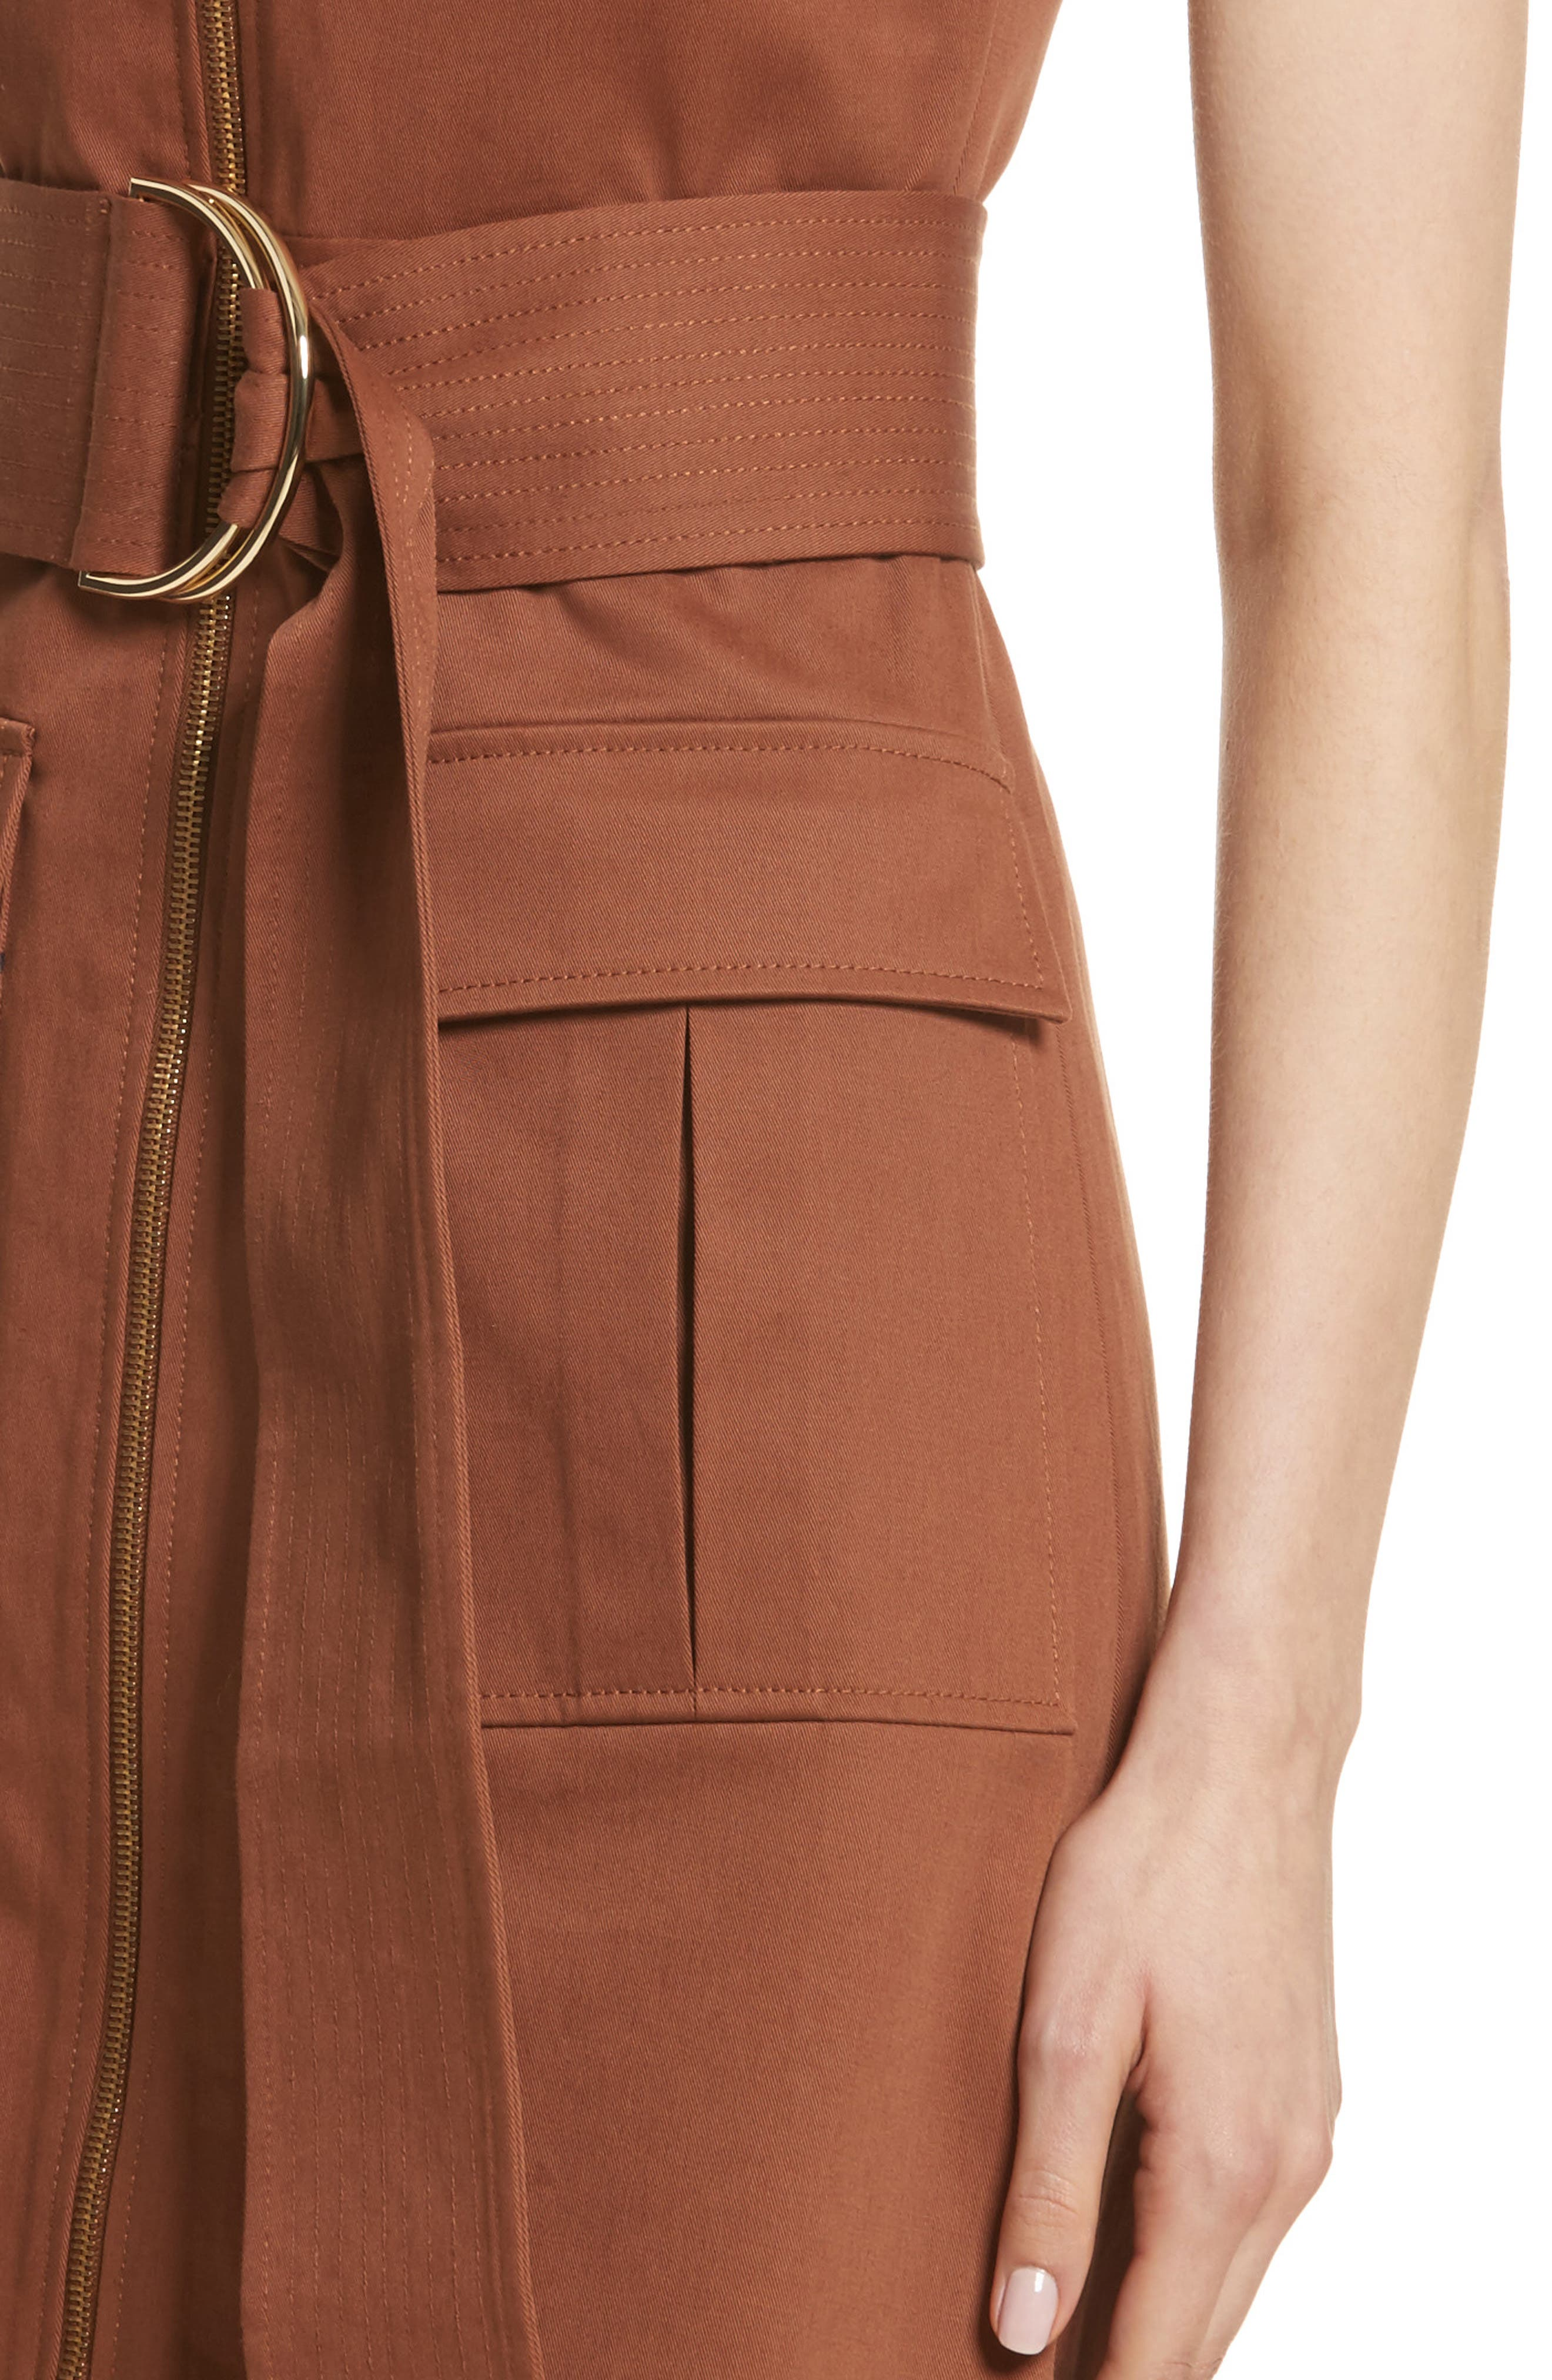 Diane von Furstenberg Zip Front Dress,                             Alternate thumbnail 4, color,                             203